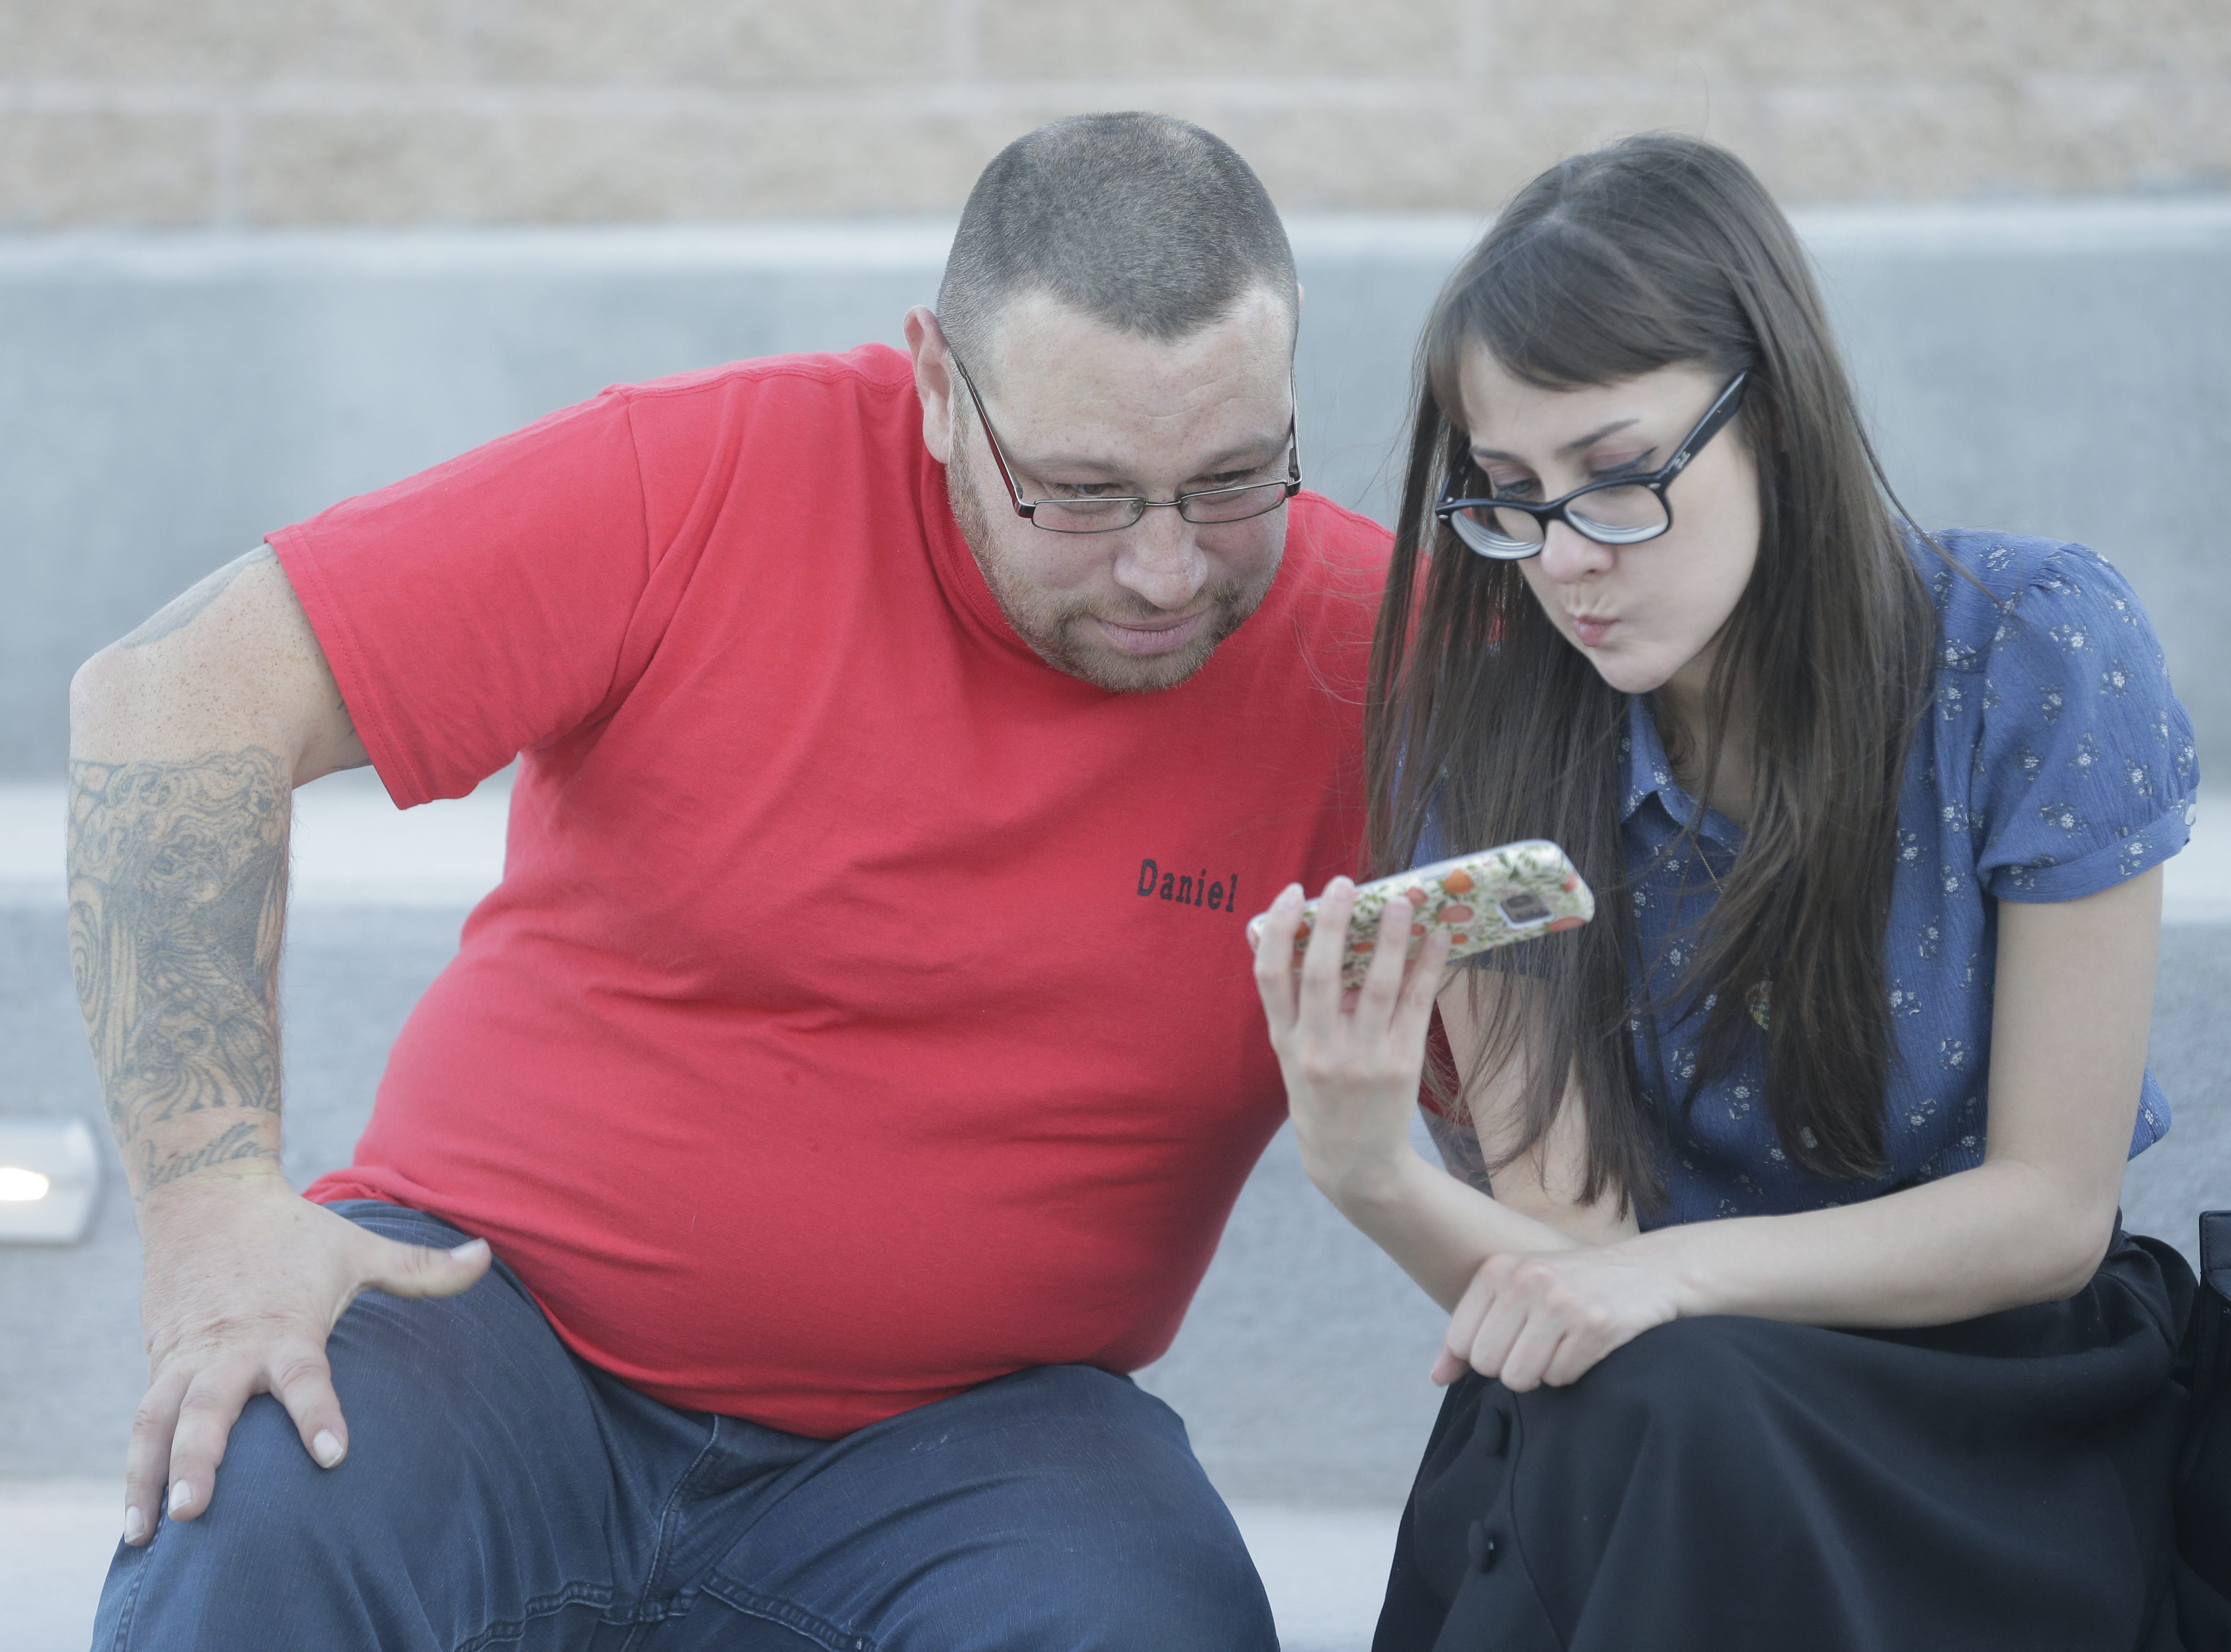 Newly exonerated Daniel Villegas and his cousin Andrea Rangel watch footage of his trial shortly after it ended. They were outside church right after a jury found him not guilty of the 1993 murders of two El Paso teens. Rangel is the sister of David Rangel, who testified that Villegas was joking when he confessed to shooting the teens.